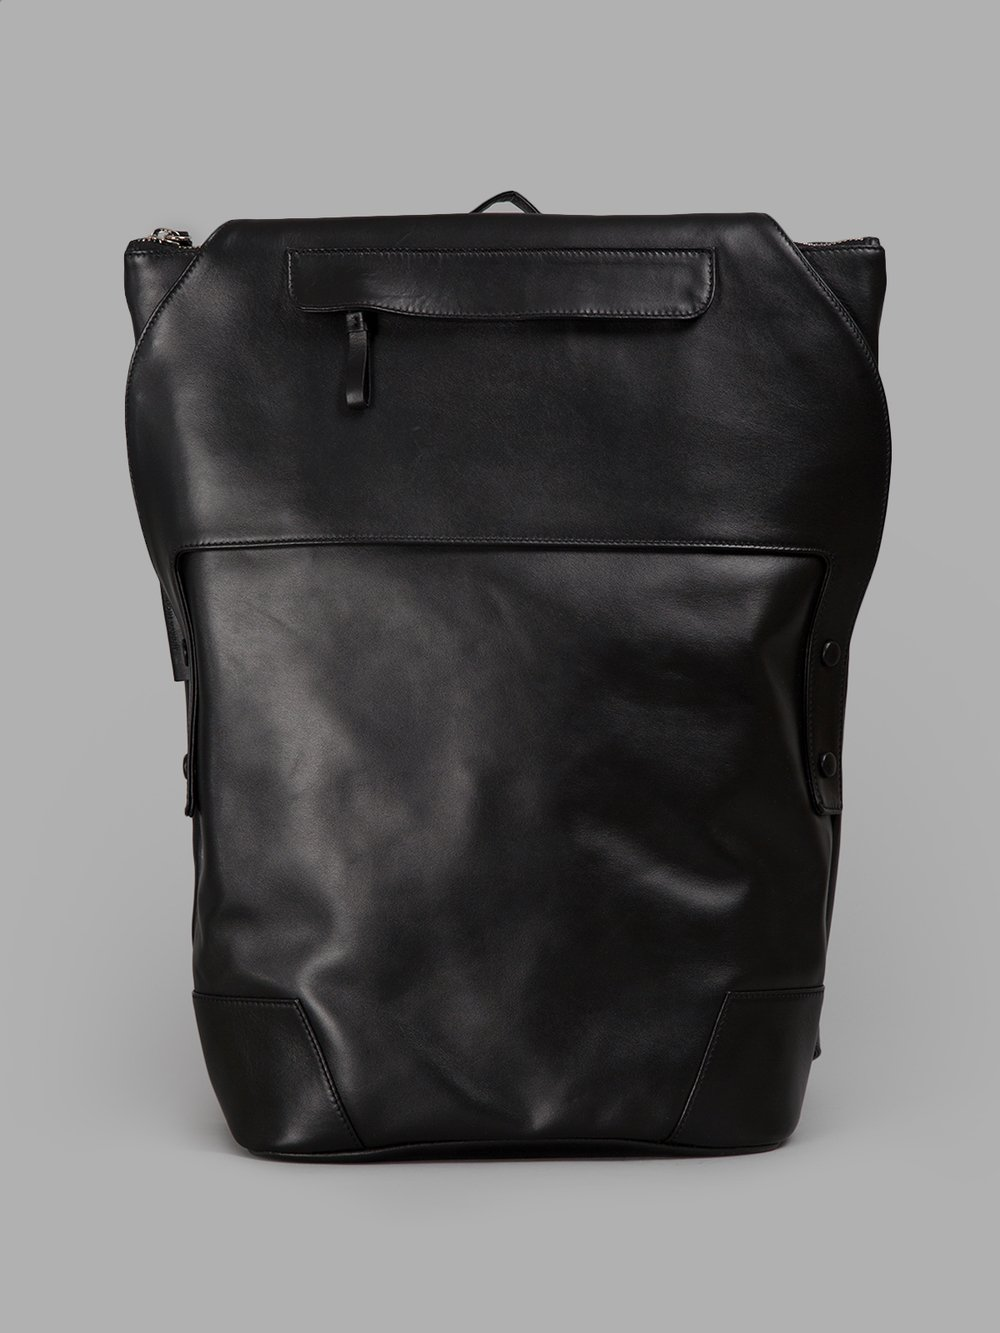 ANDREA INCONTRI BLACK UNCONVENTIONAL BACKPACK